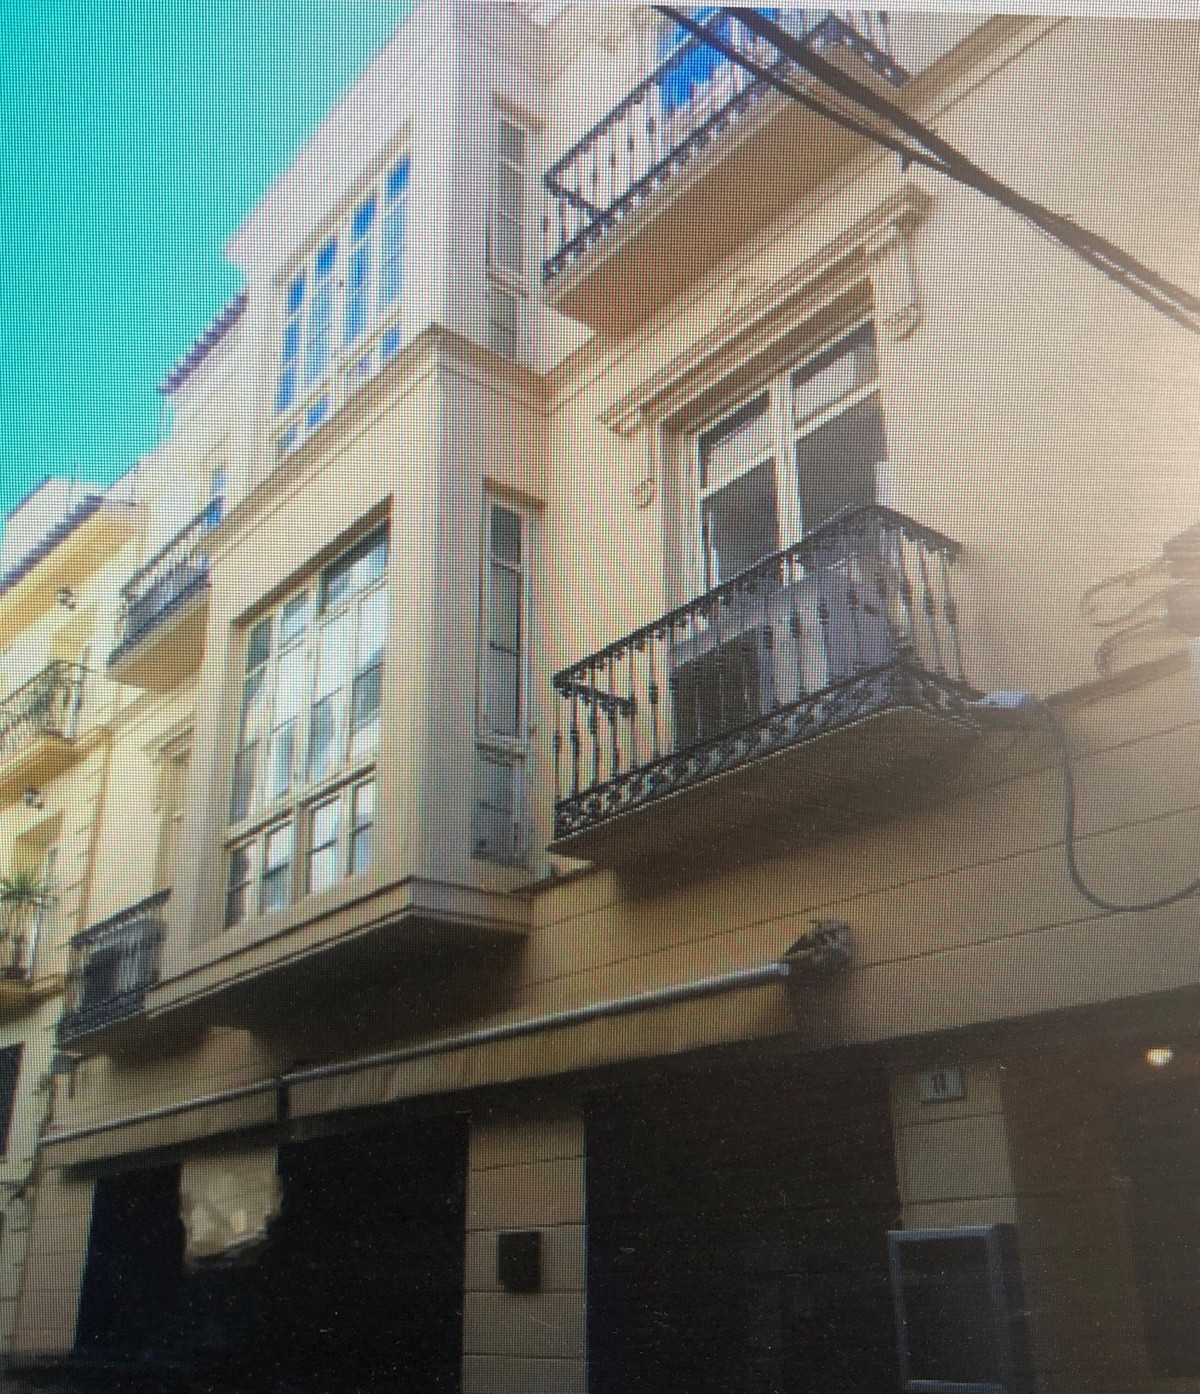 Whole building in Malaga center 412m2 on 120m2 plot Local on ground floor 77m2 First floor apartment, Spain